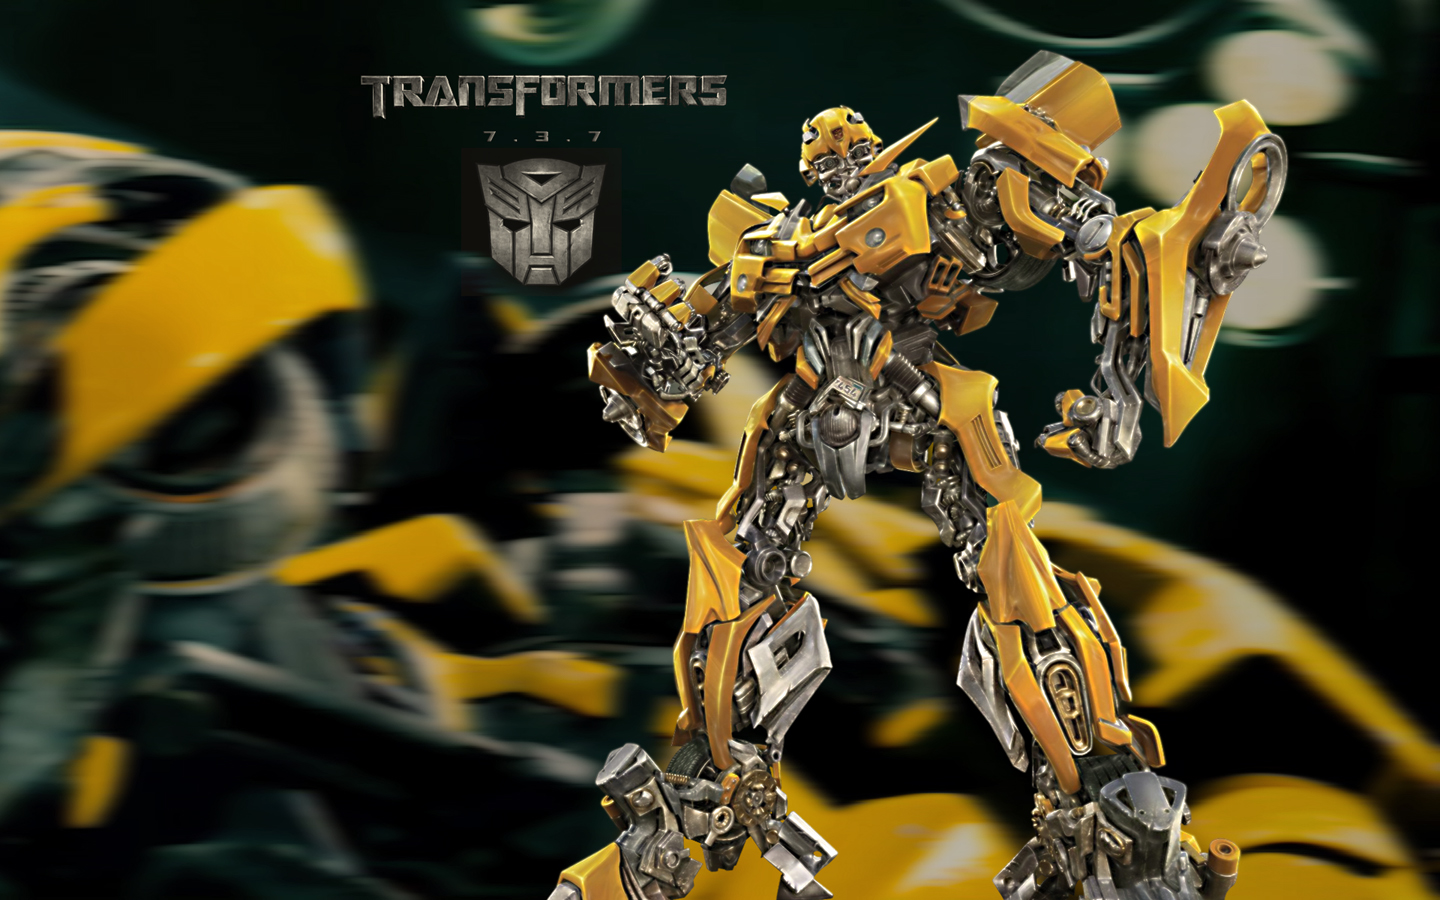 Transformers wallpapers 1440x900